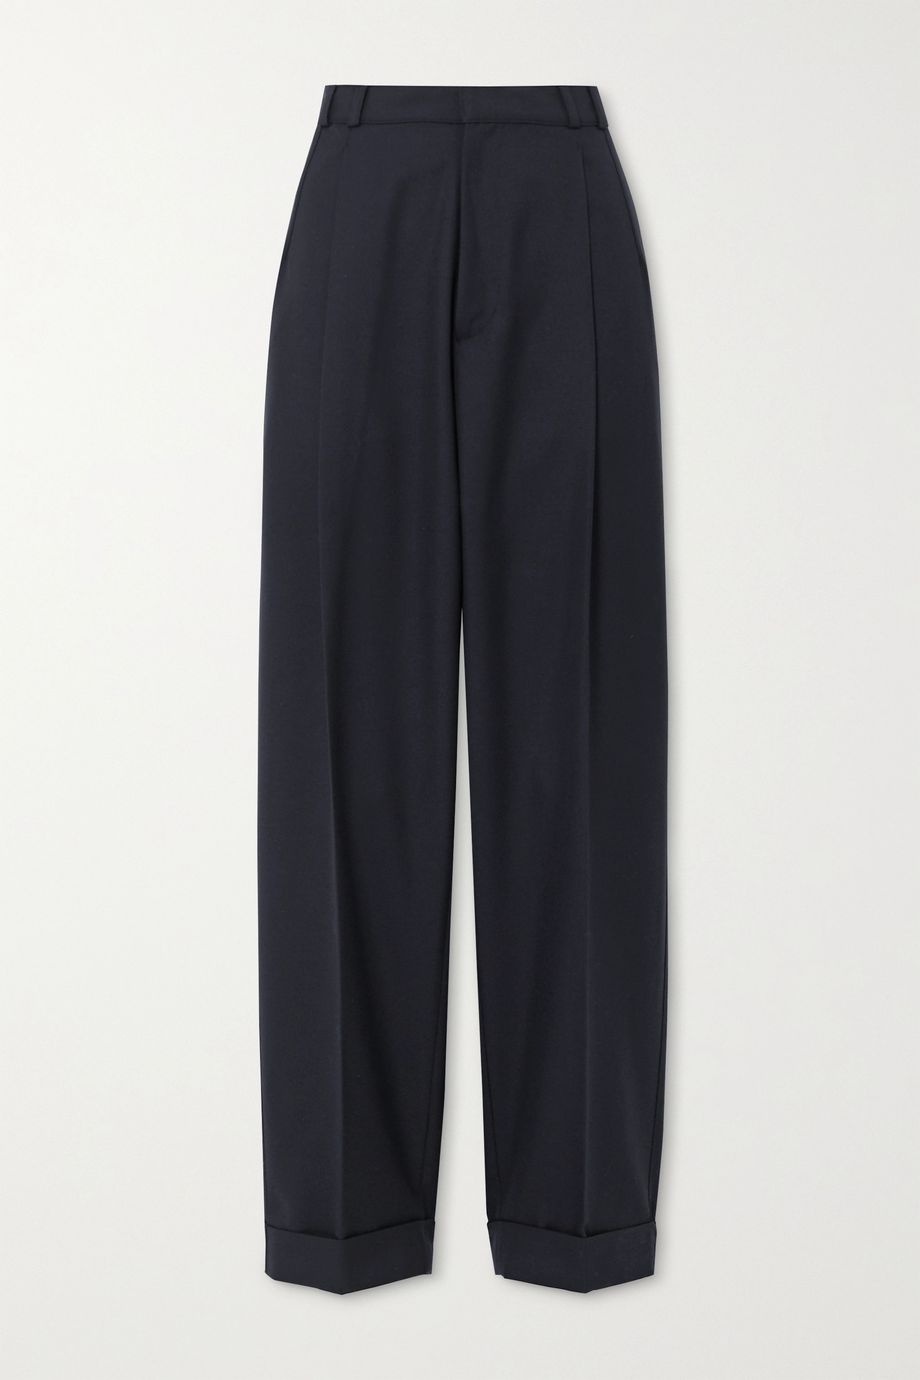 RE/DONE 80s pleated twill straight-leg pants